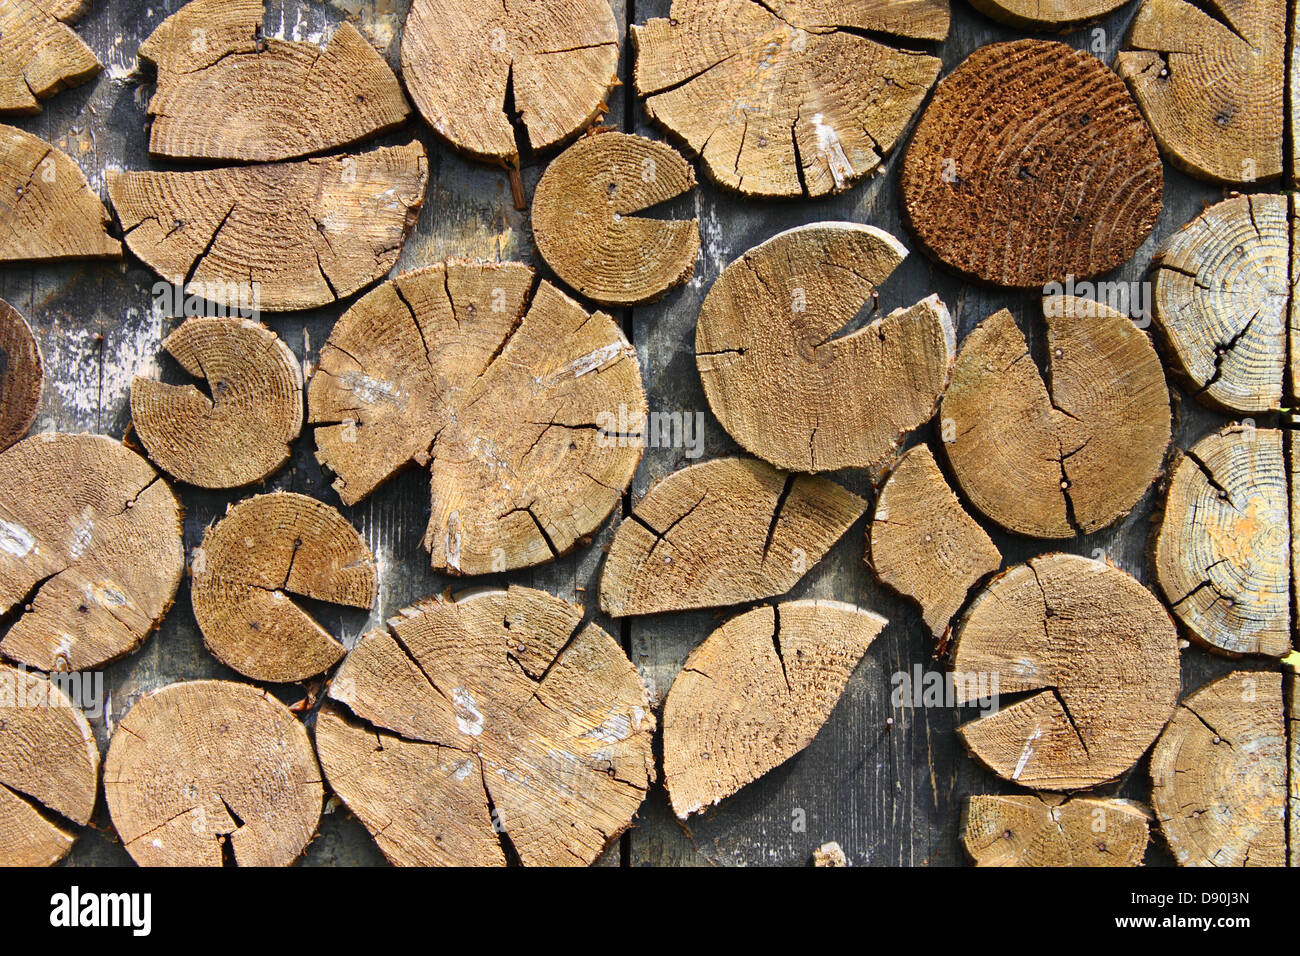 Detailed view of a nice wood fence reproducing firewood - Stock Image